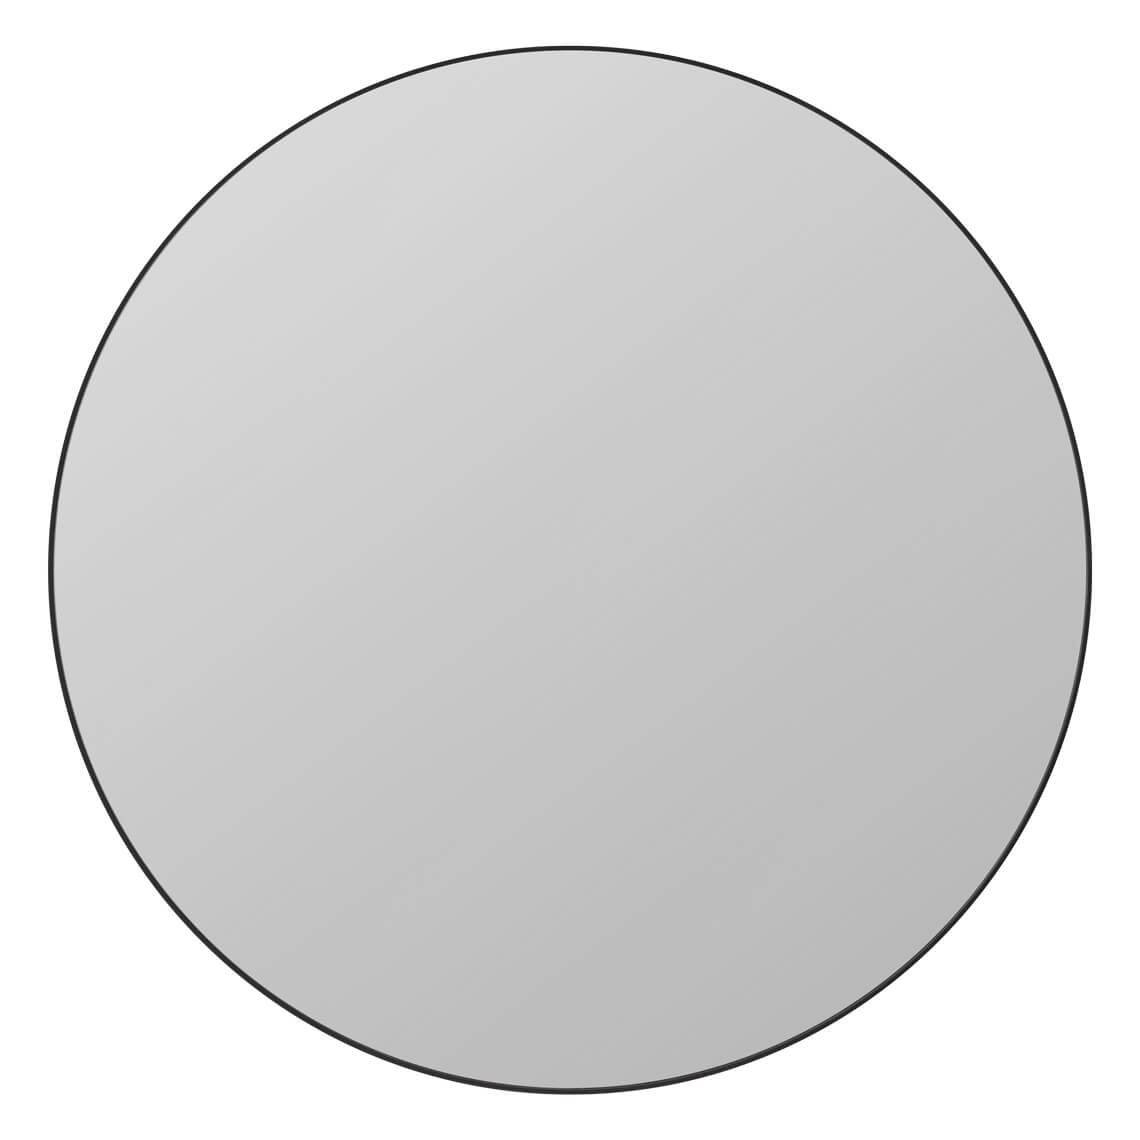 Mirrors | Wall Mirrors & Round Mirrors | Freedom | Freedom regarding Black Circle Mirrors (Image 18 of 25)